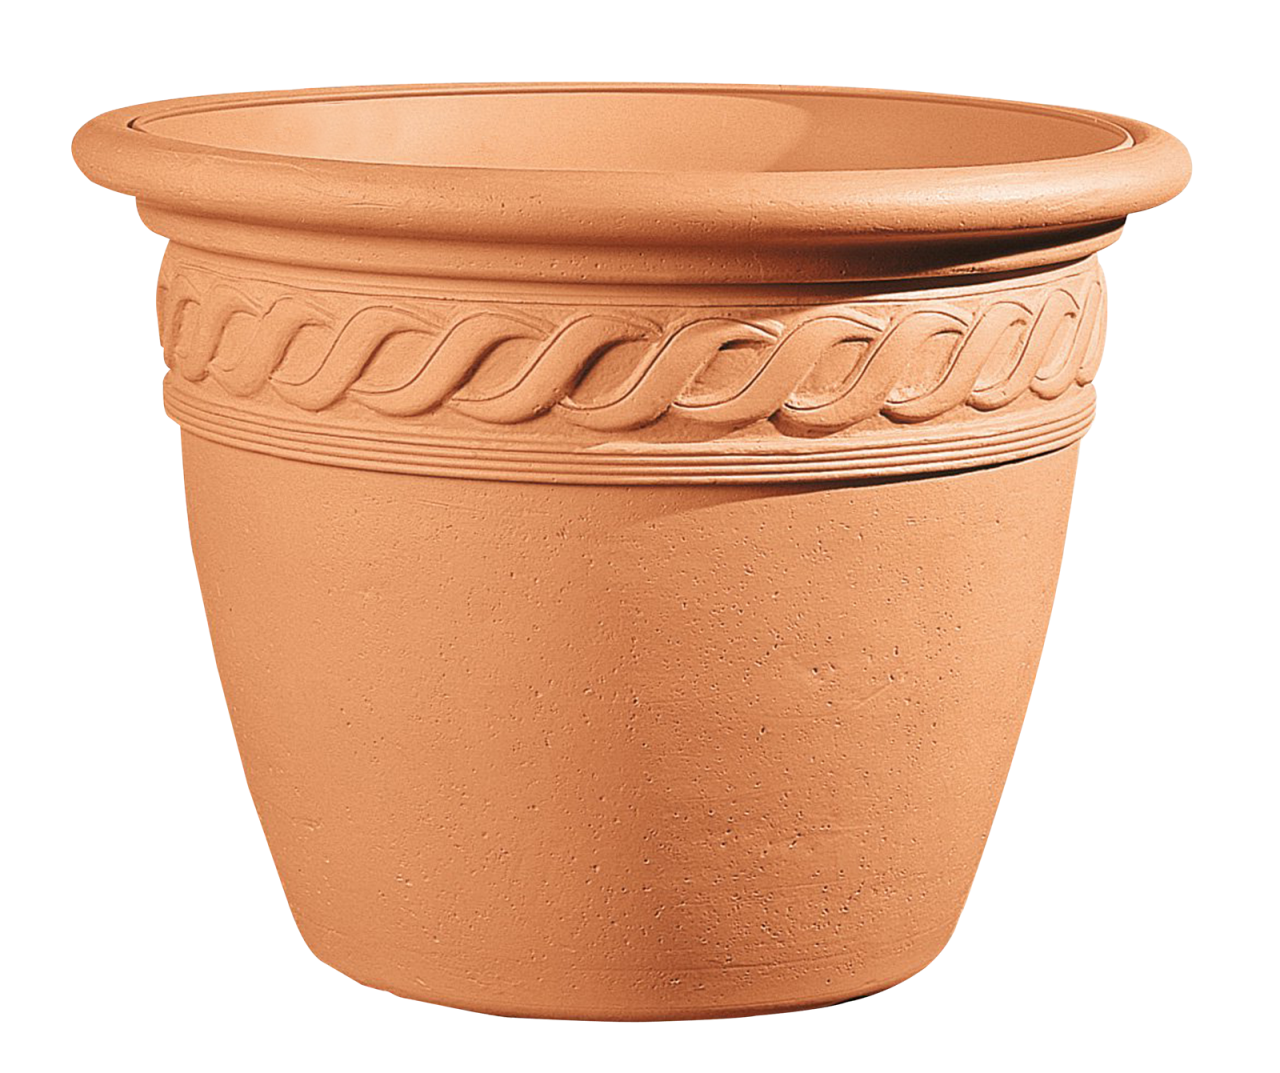 Flower Pot PNG Image